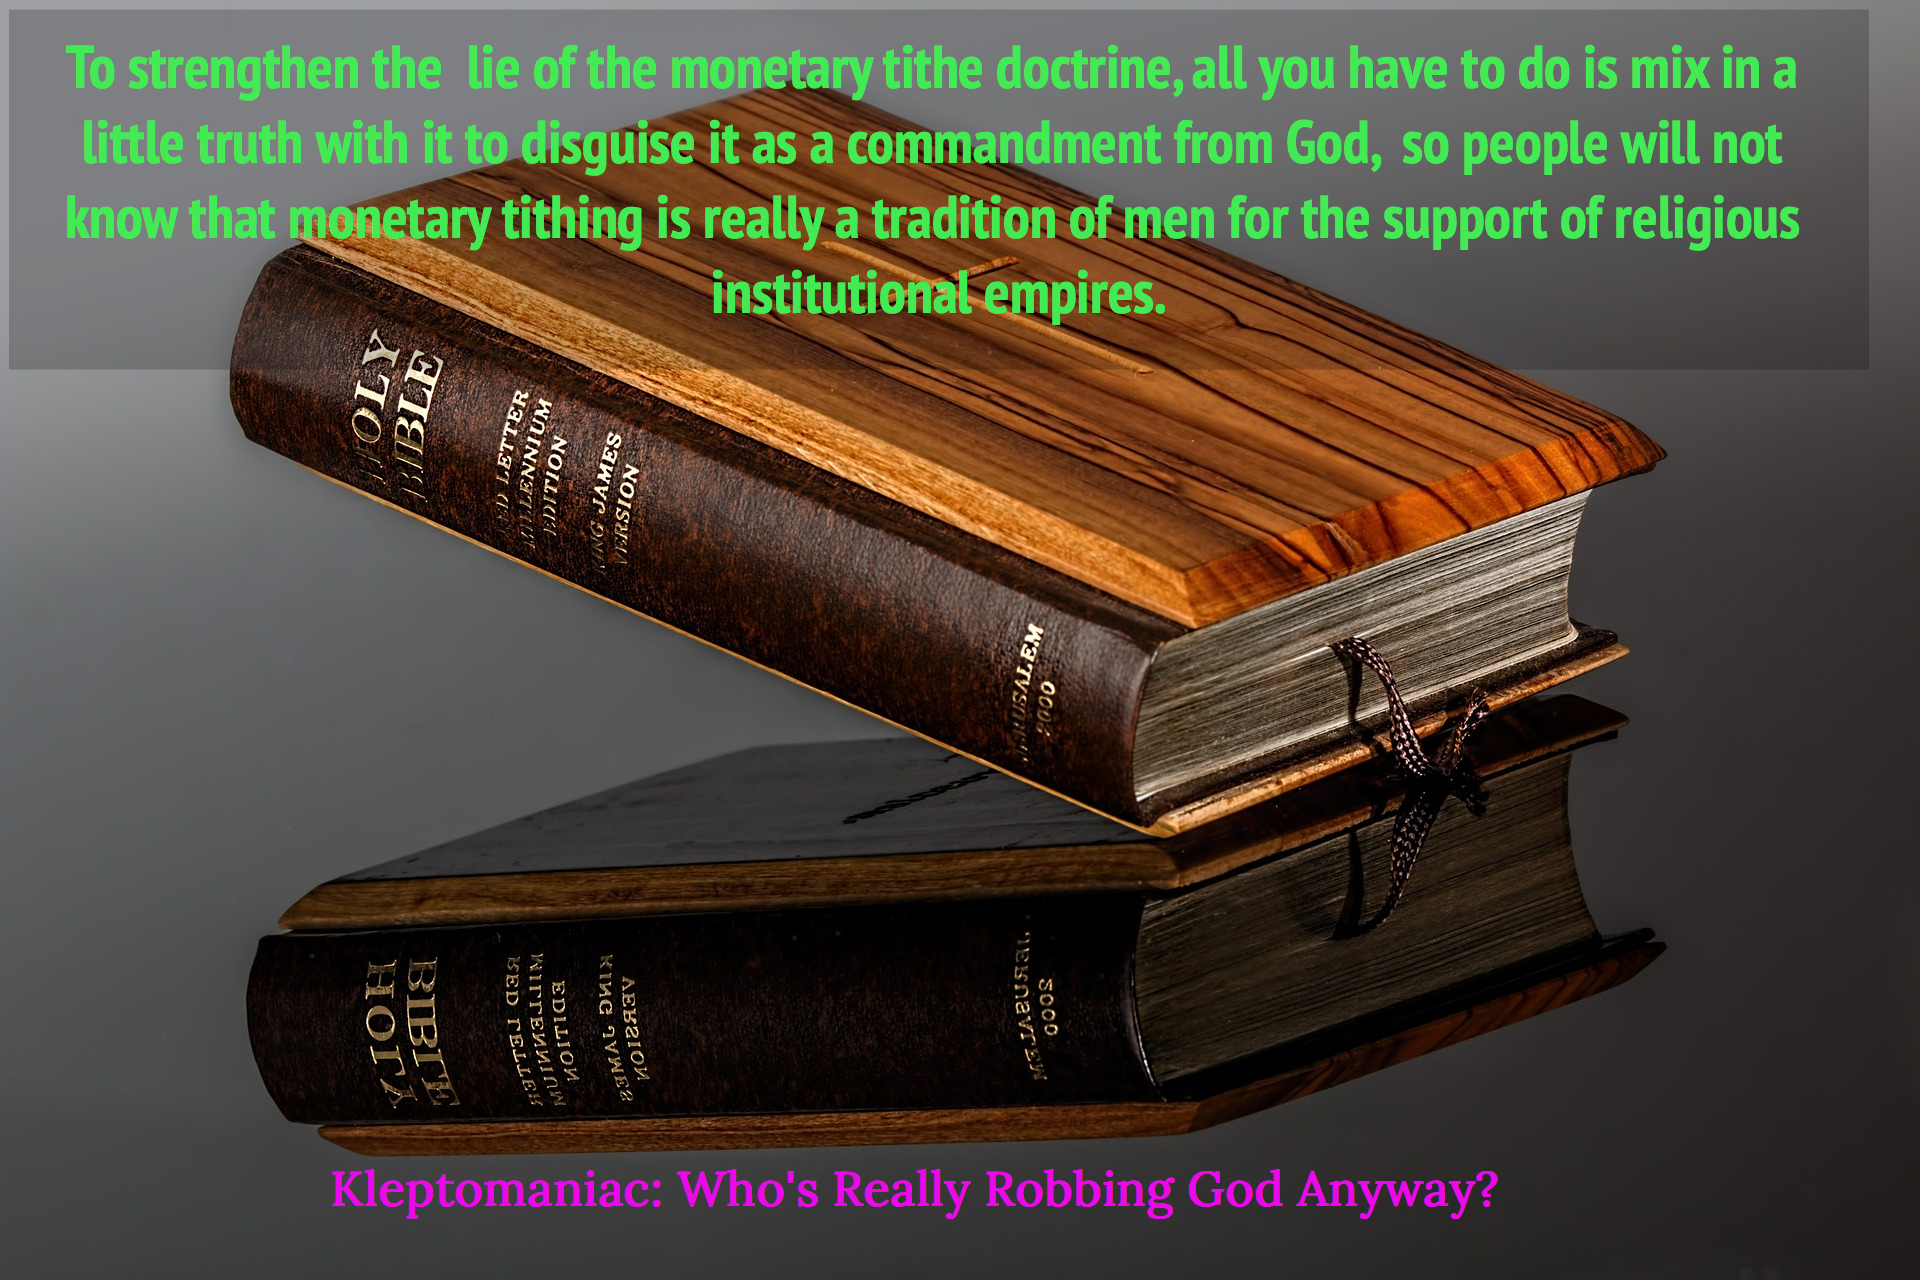 to strengthen the lie of the monetary tithe doctrine all you have to do is mix in a...